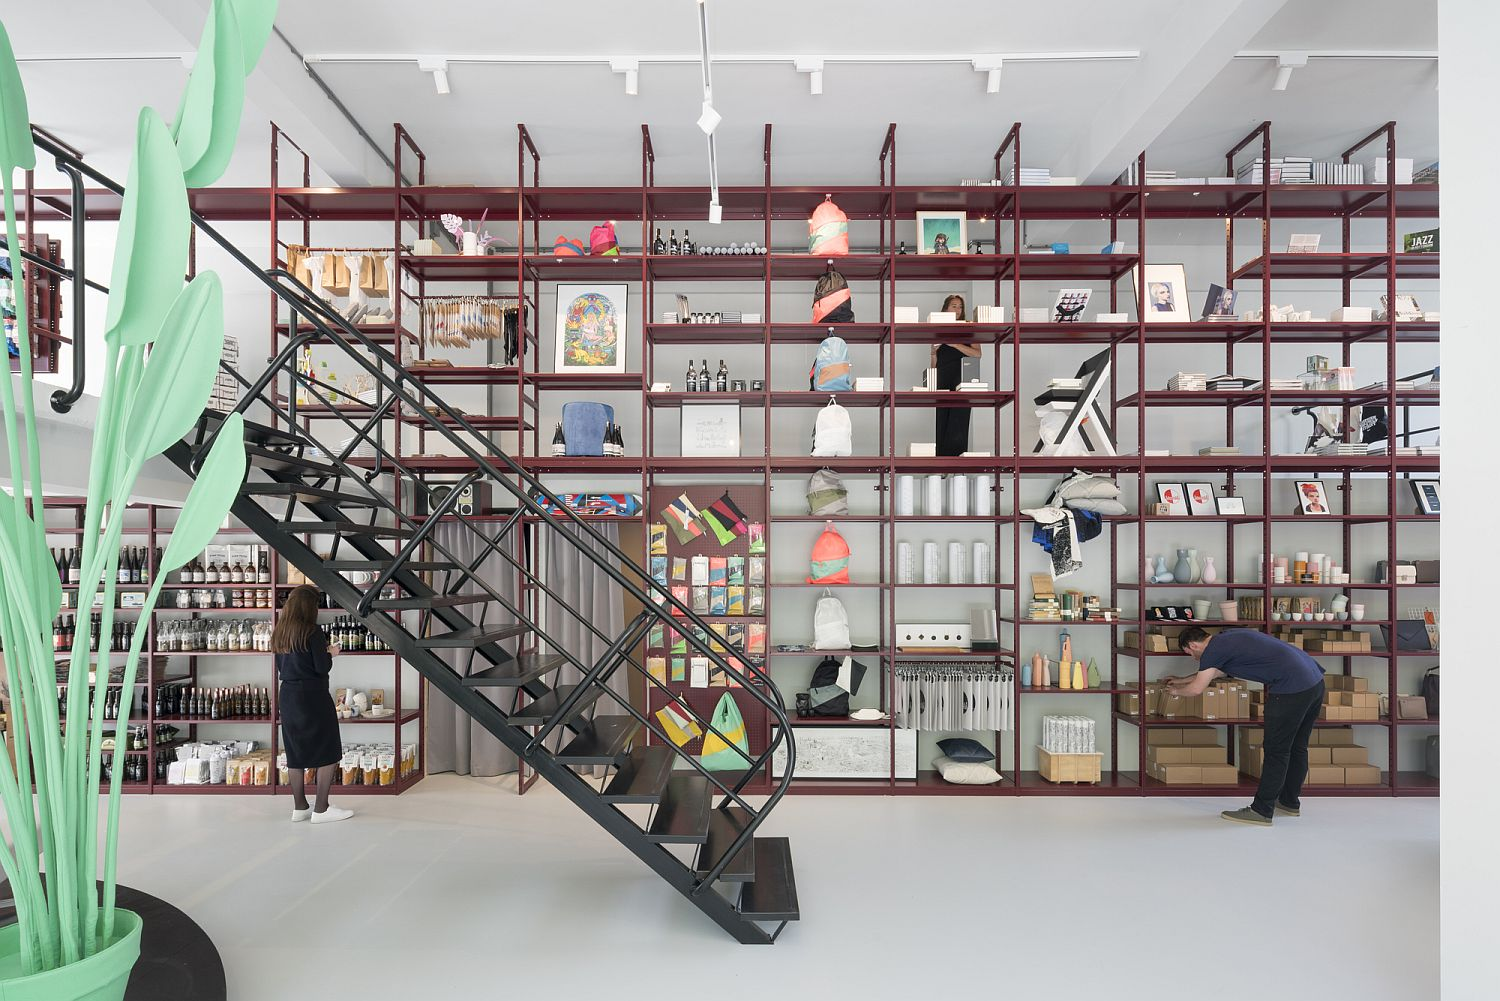 Innovative Industrial Interior Design innovative industrial style homes inside home industrial style design View In Gallery Industrial Style Sheling In Red For The Innovative Groos Store Revitalized Interior Of Groos Creative